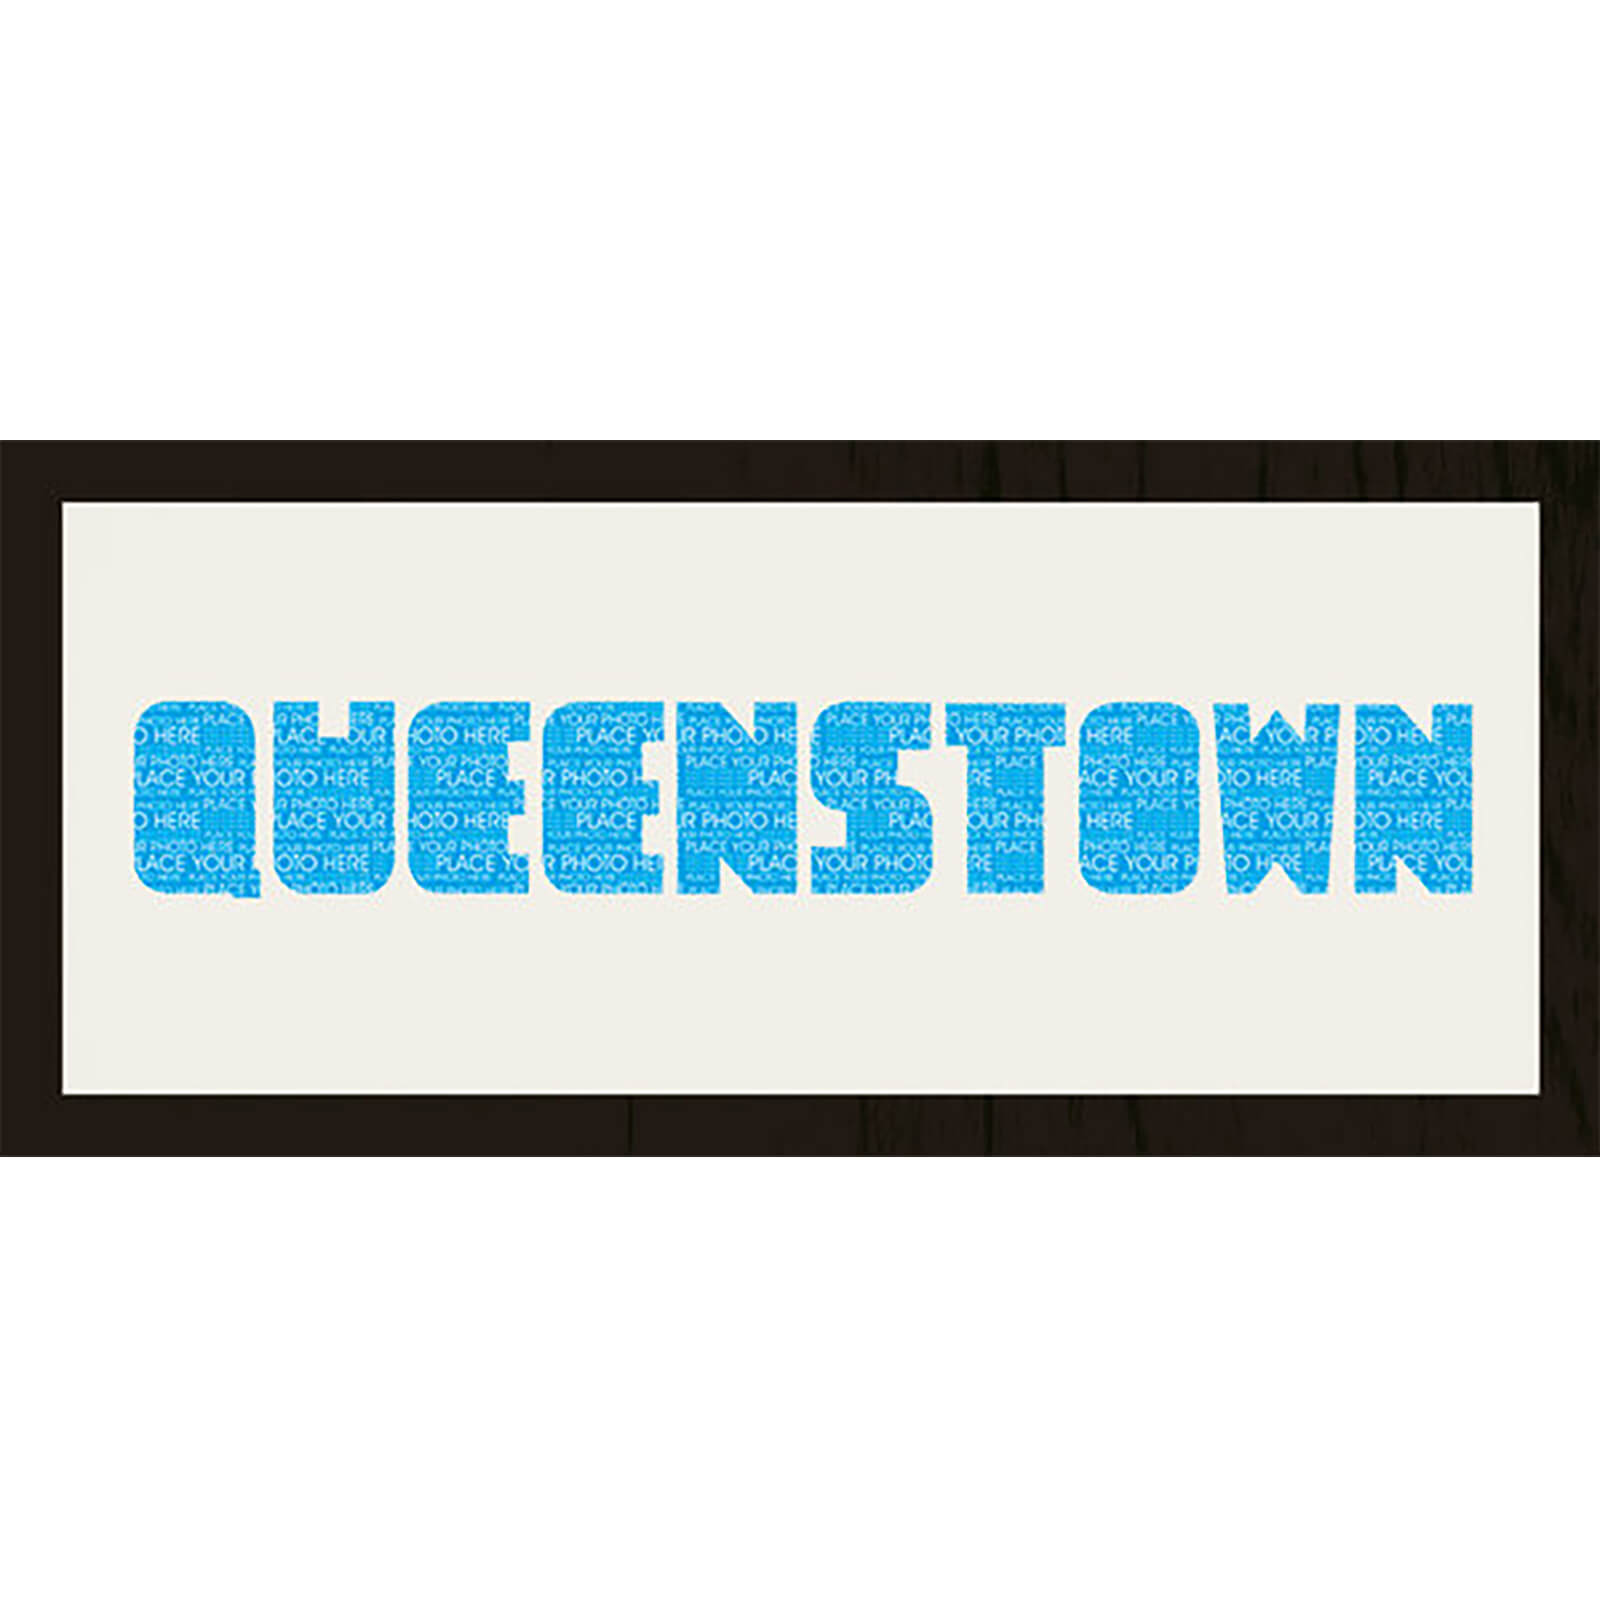 "GB Cream Mount Queenstown Photo Font - Framed Mount - 12"""" x 30"""